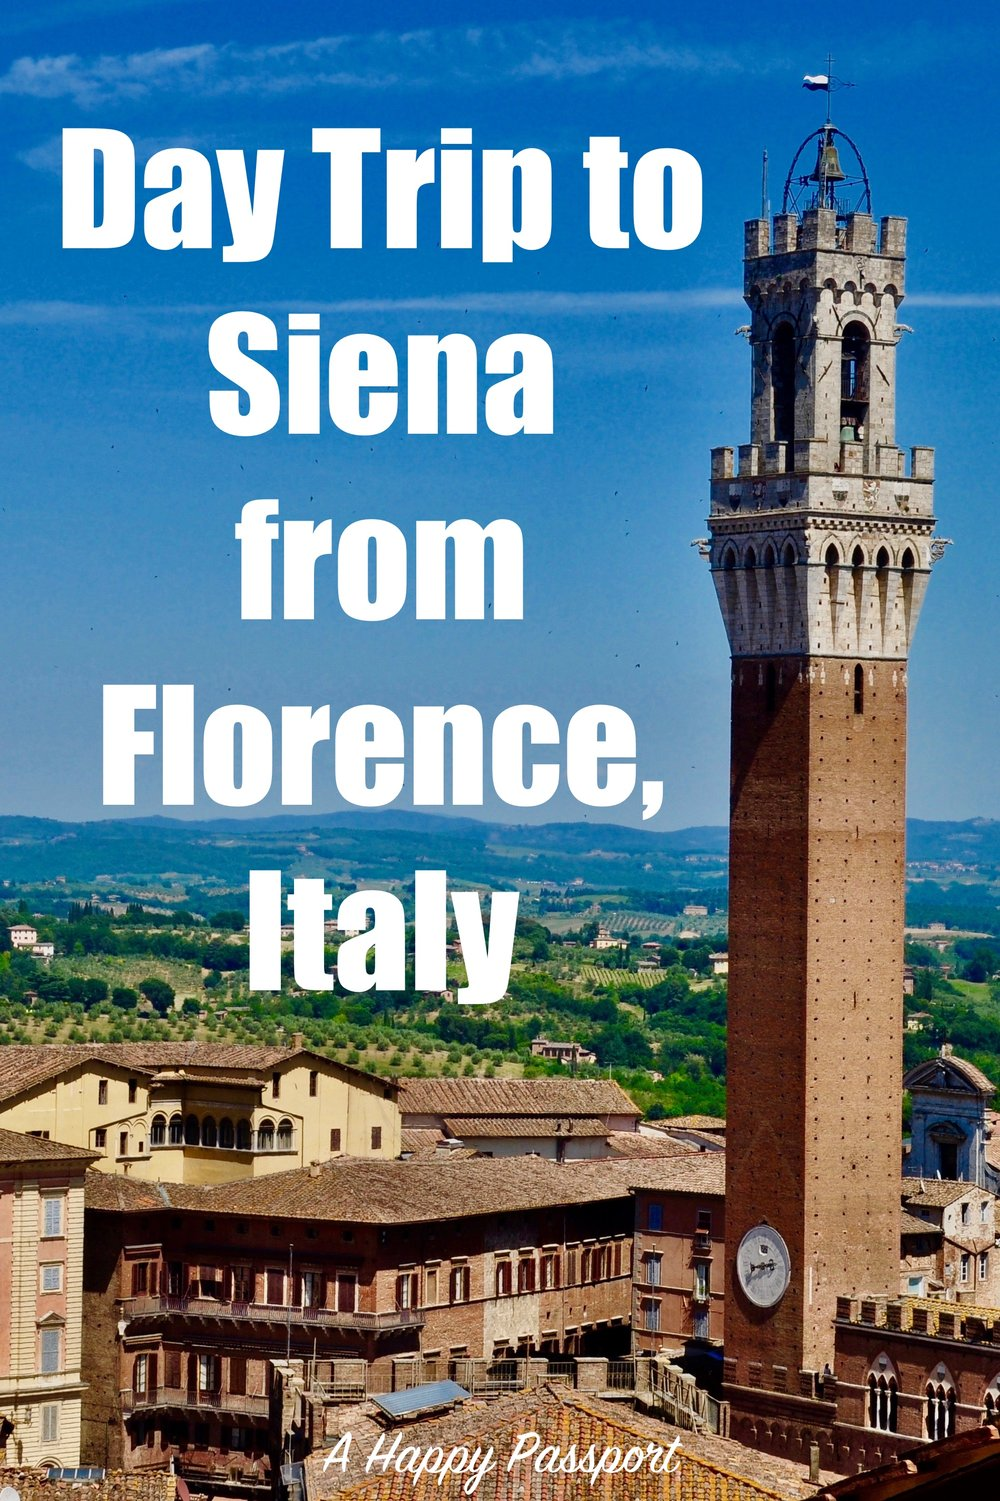 Guide on how to take a Scenic Day Trip to Siena from Florence, Italy - A Happy Passport #siena #florence #italy #tuscany #travel #europe